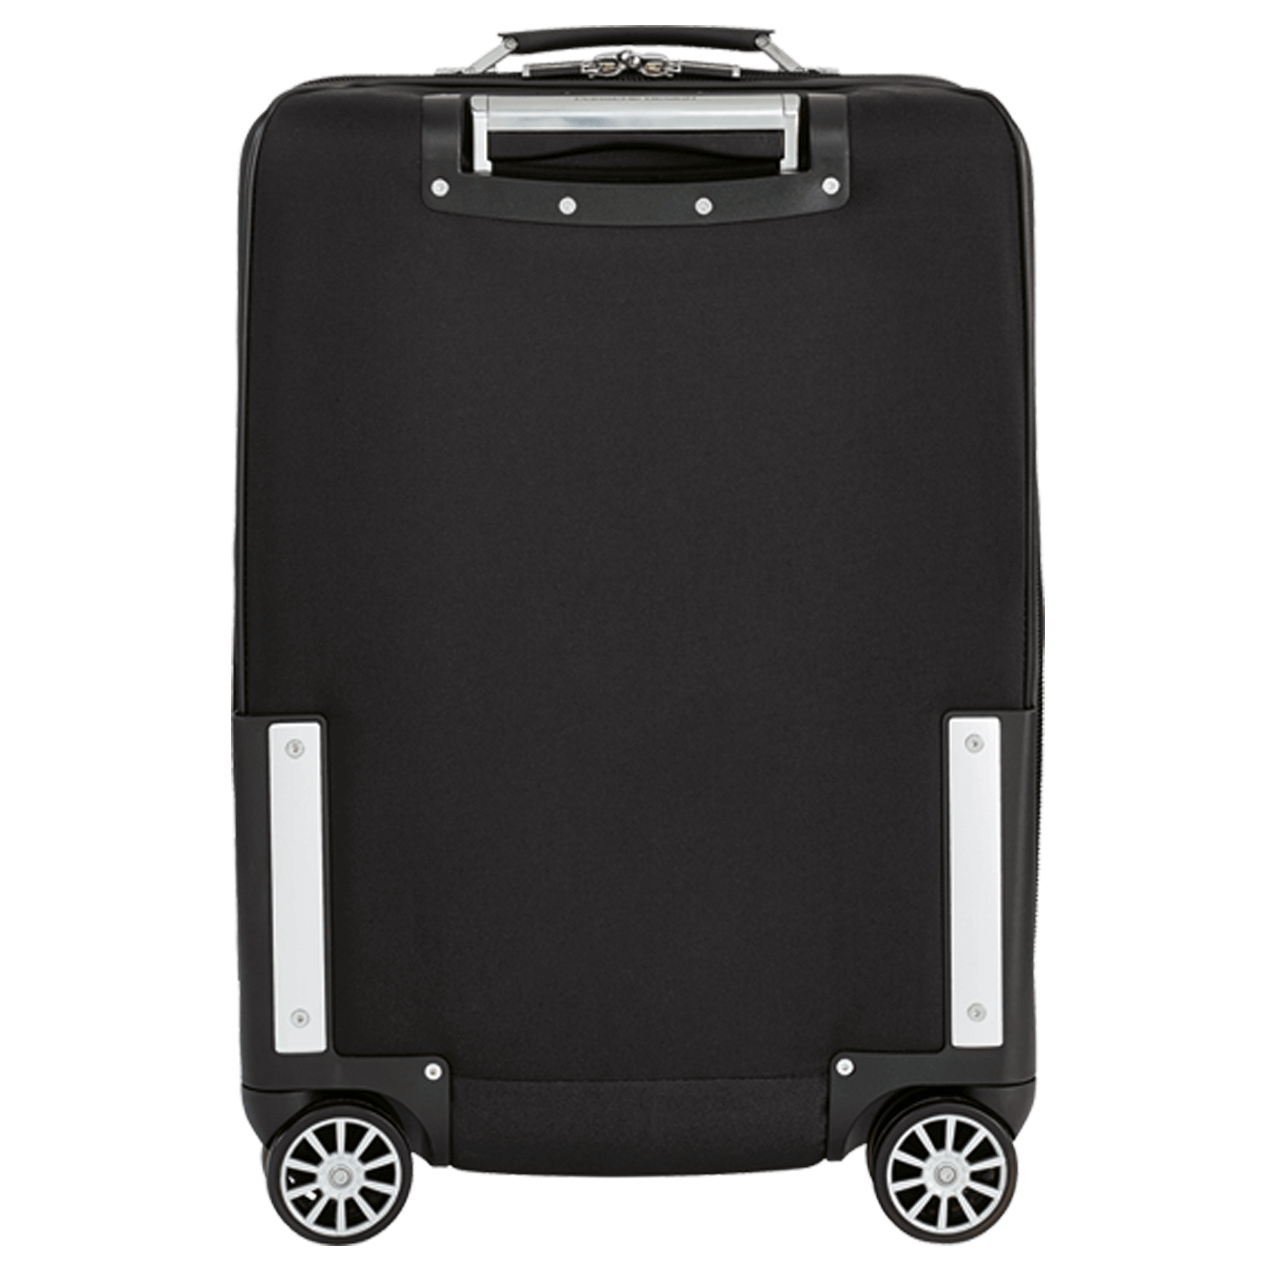 ROADSTER SOFTCASE SERIES TROLLEY 670 - фото 4